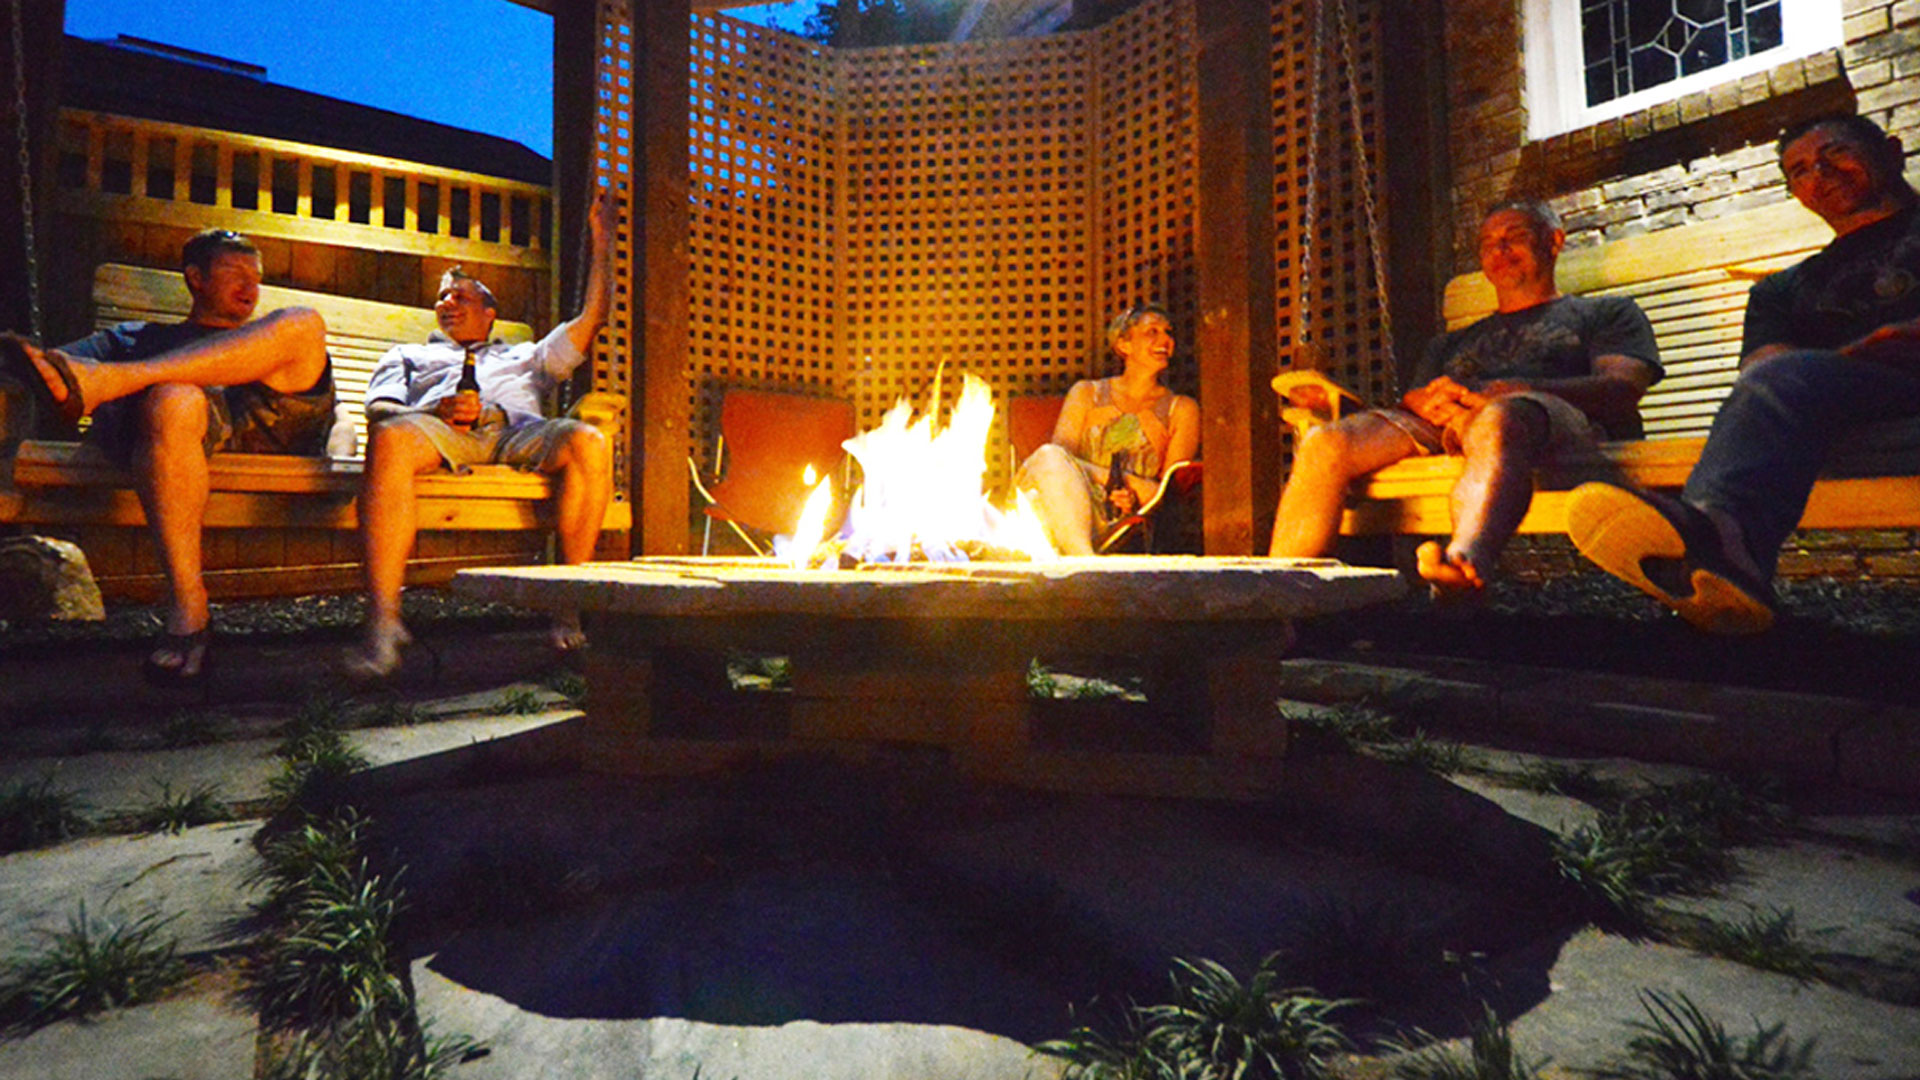 people sitting around outdoor living space with fire pit and wooden swings